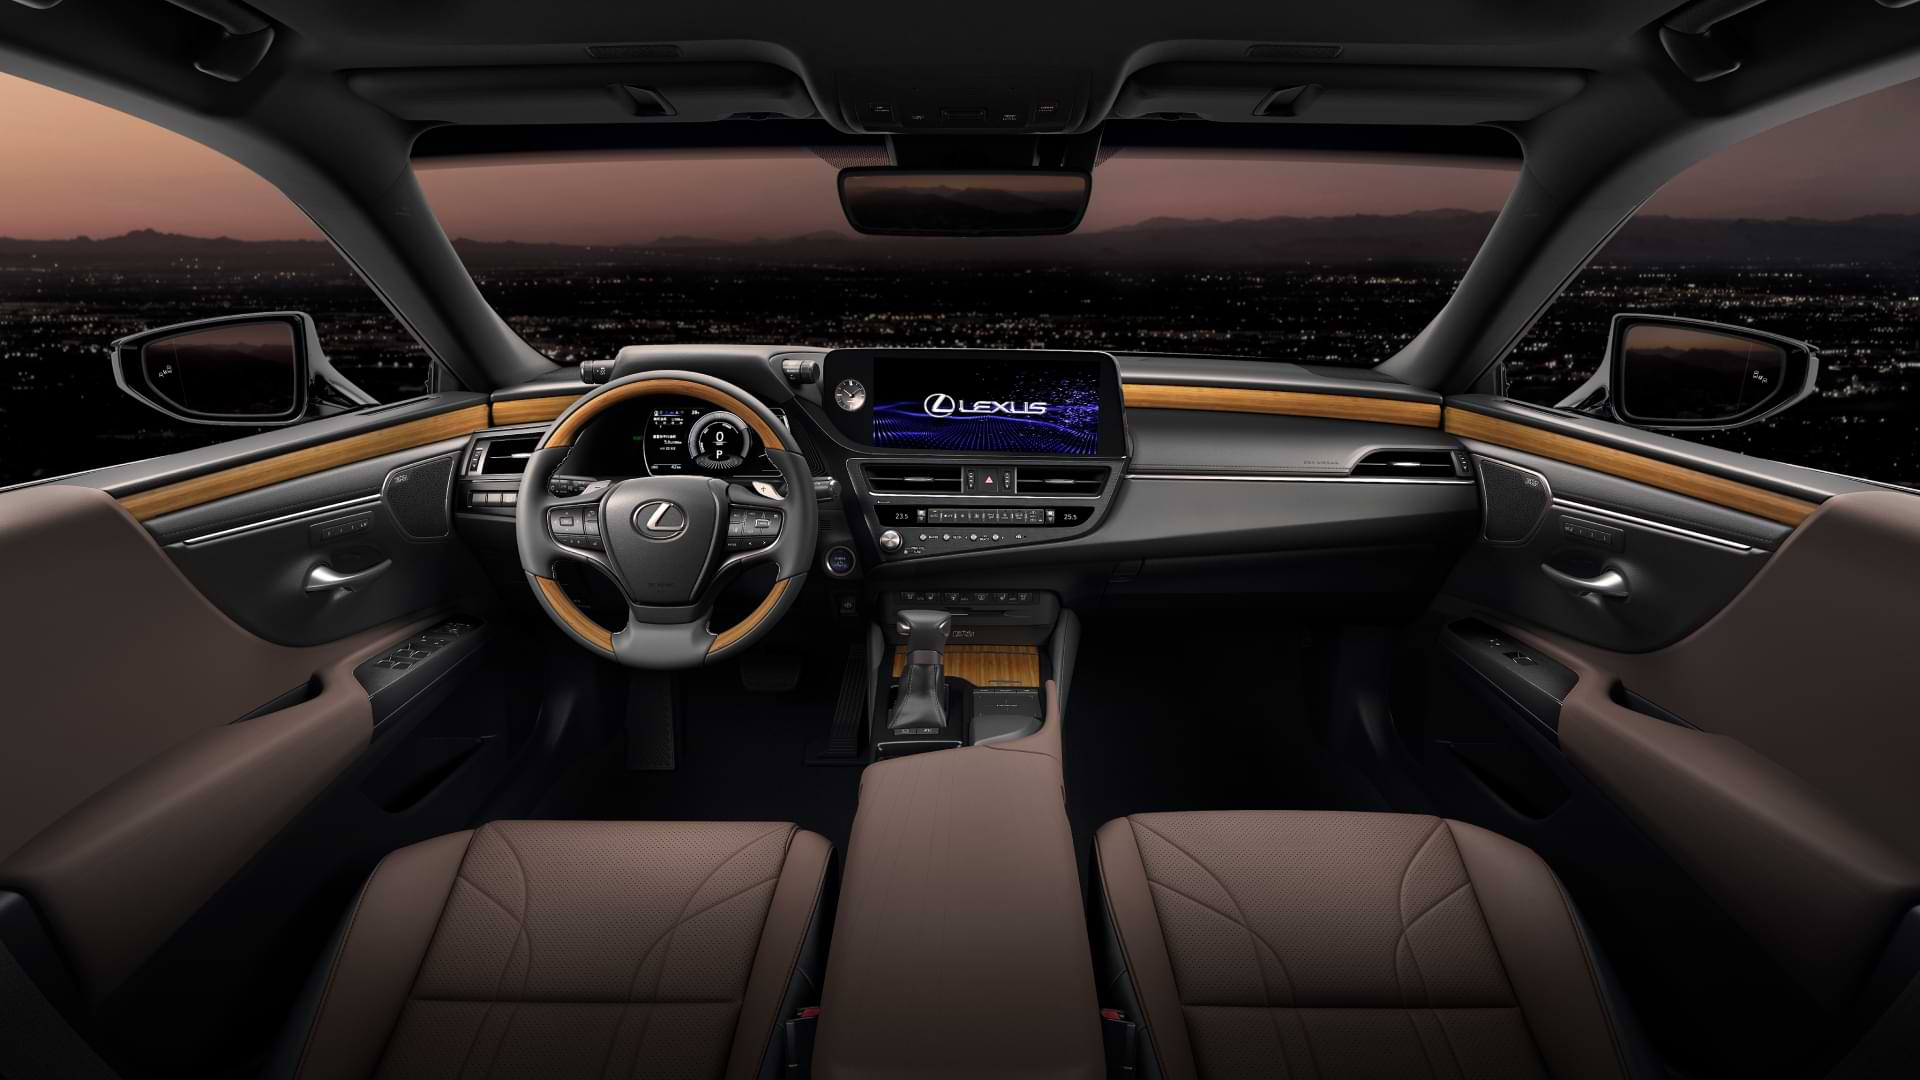 Interior view of 2021 Lexus ES steering wheel, dash and front seats.